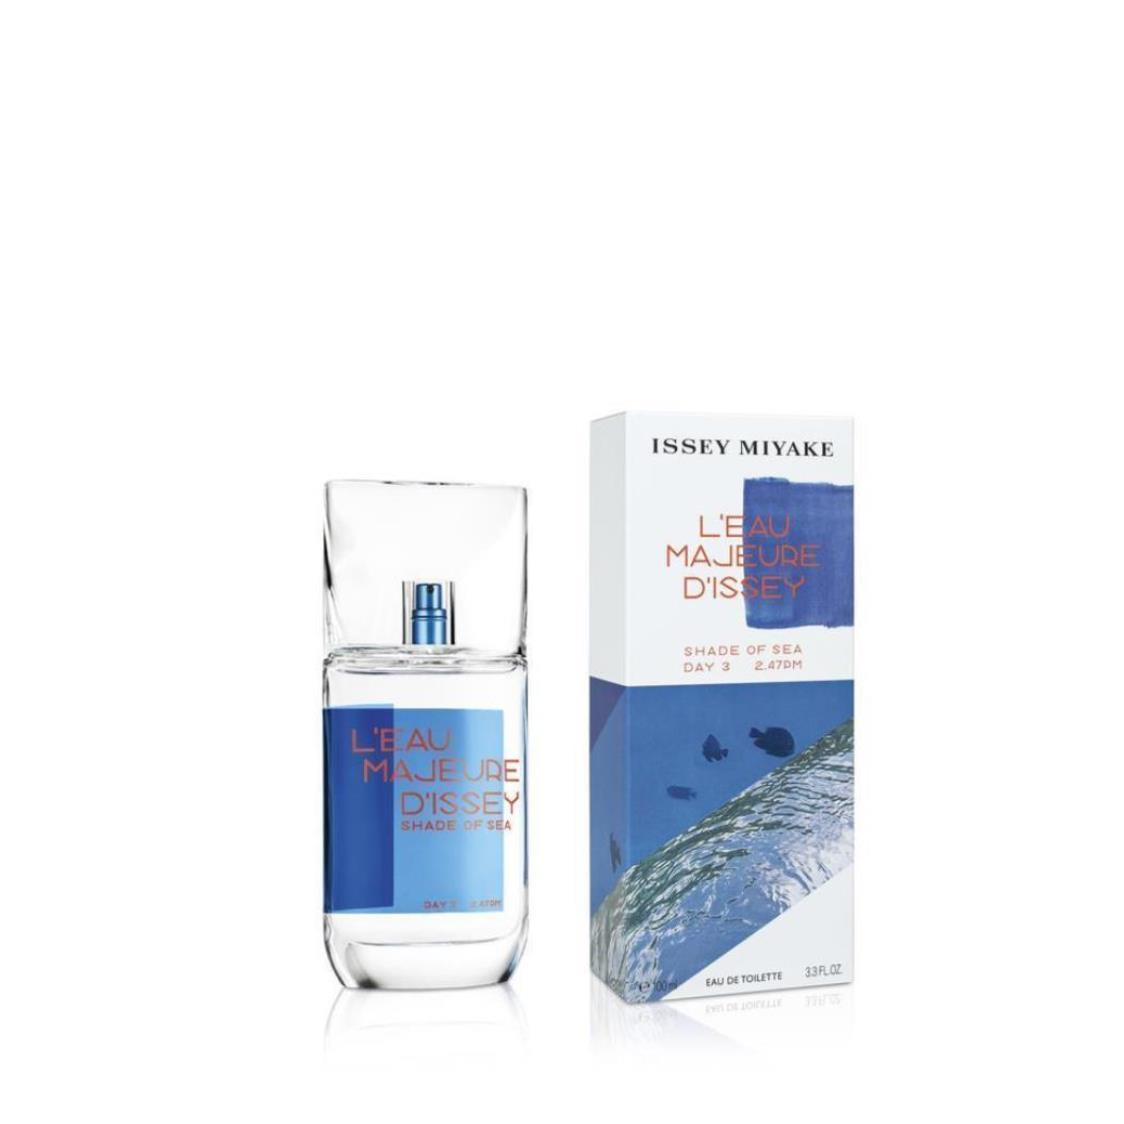 Issey Miyake Leau Majeure Dissey Shade of Sea EDT 100ml